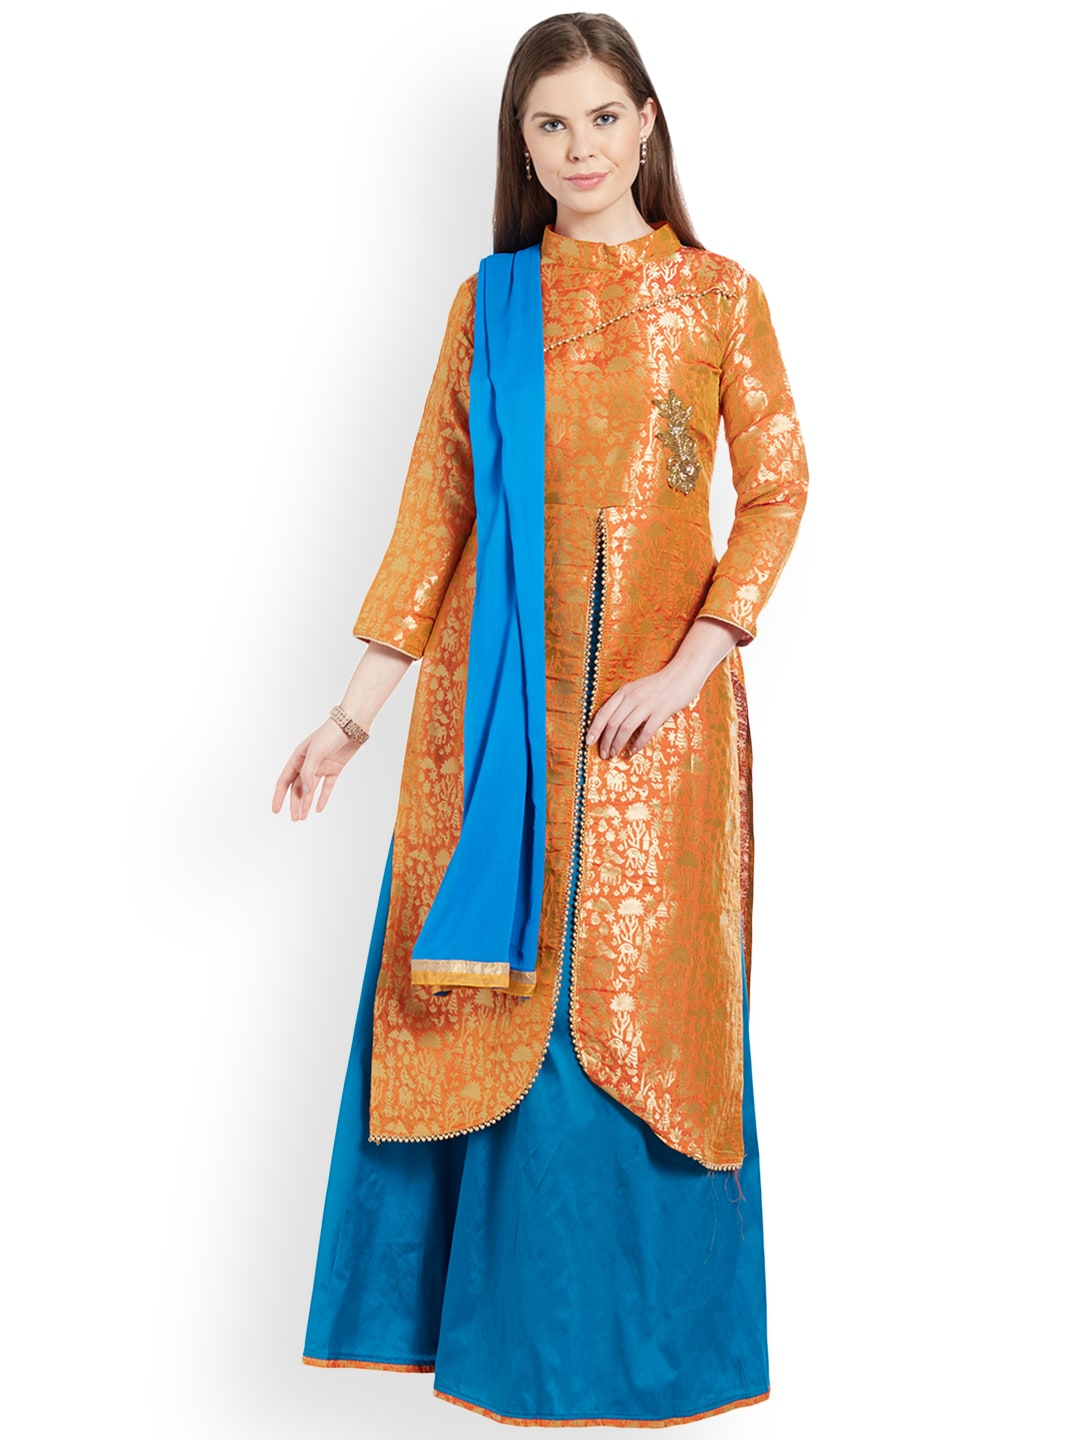 Viva N Diva Orange & Turquoise Blue Woven Design Semi-Stitched Lehenga & Blouse with Dupatta image